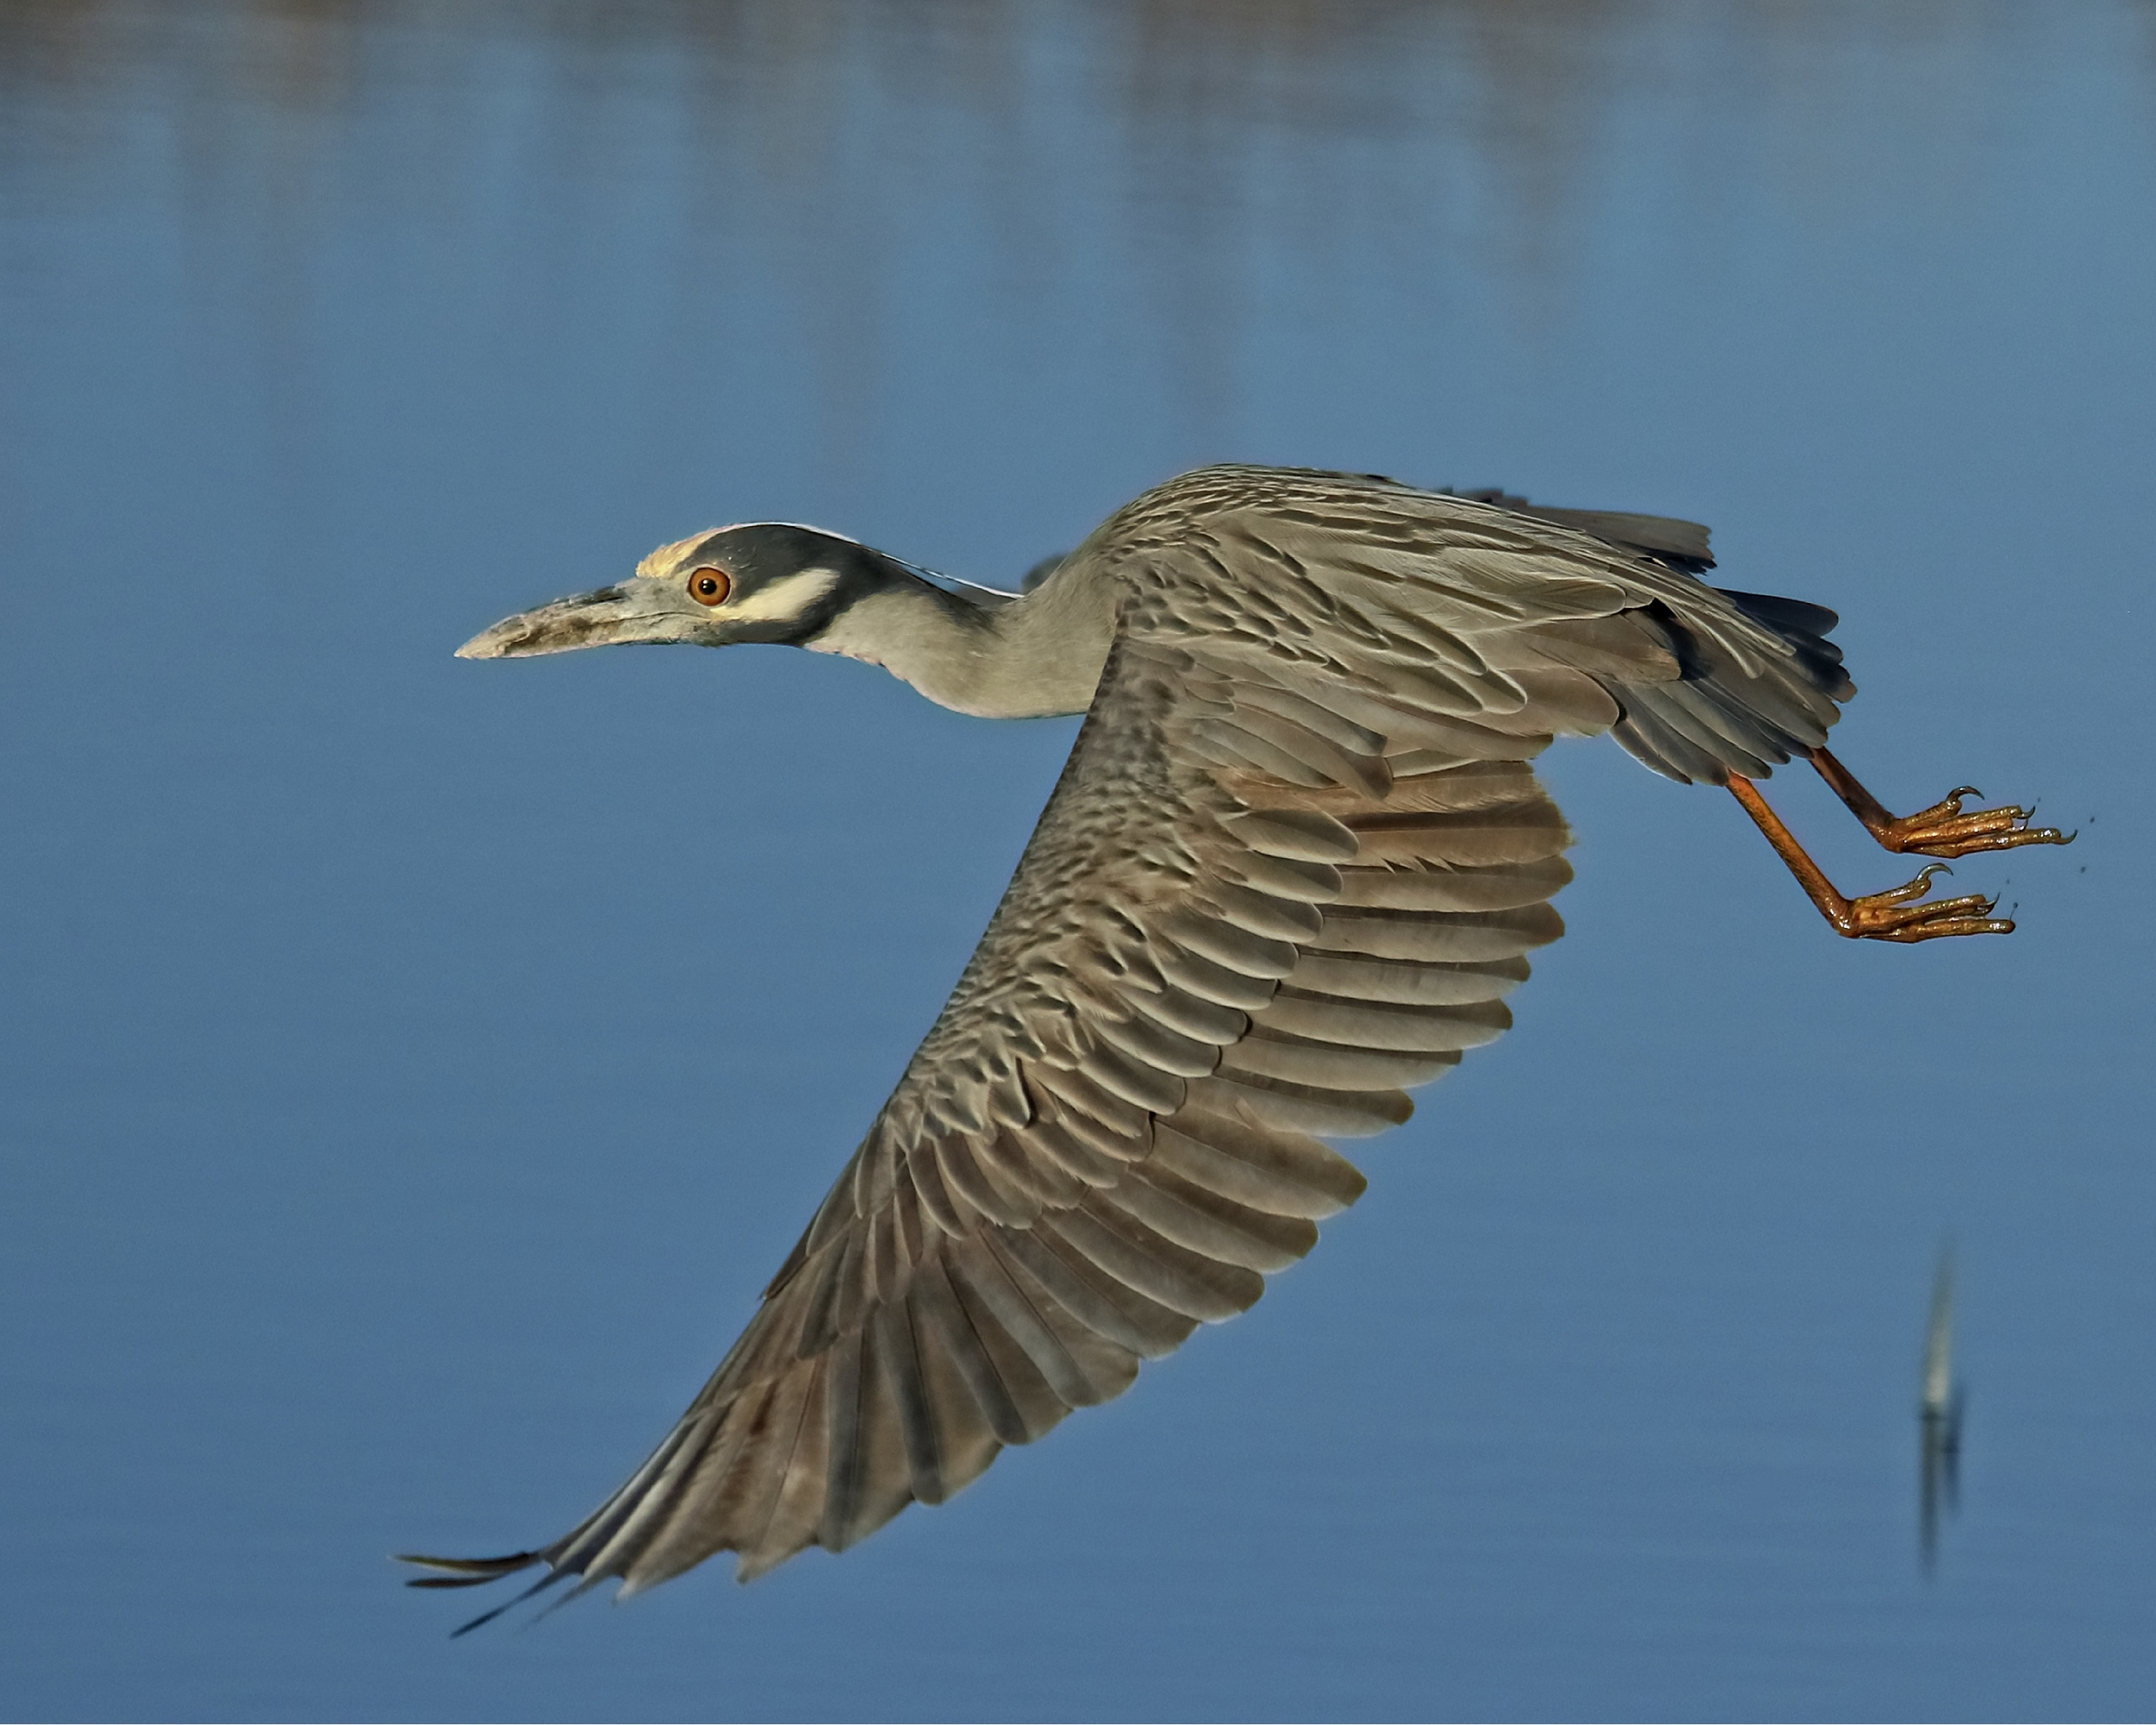 Great news! George, the Yellow Crowned Night Heron has returned and is waiting for Georgia to show up too! Time to start building that nest for George Jr.